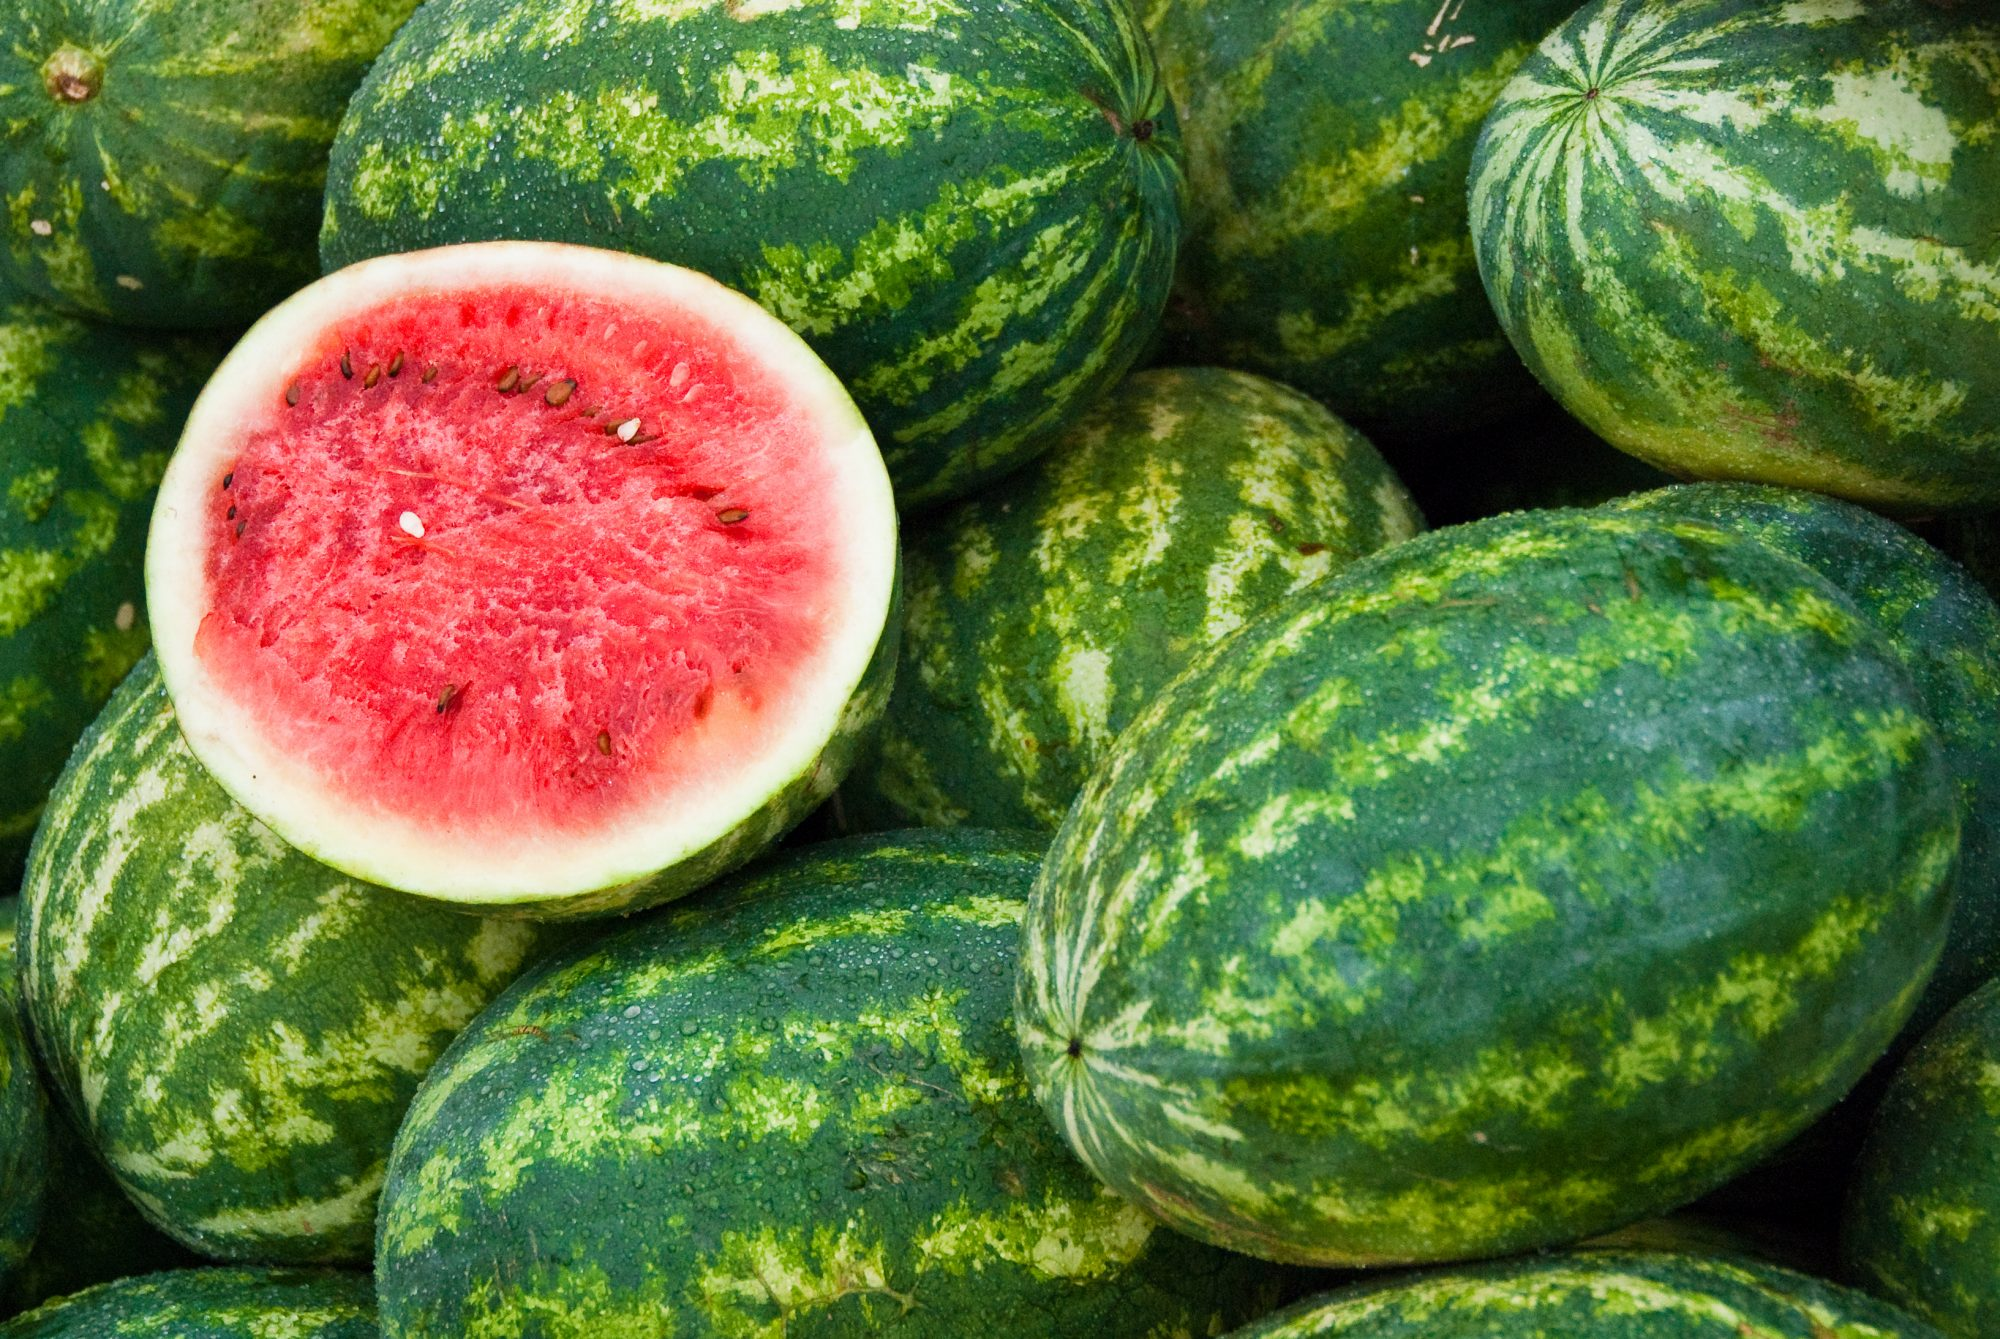 3 Simple Ways to Know if a Watermelon is Ripe